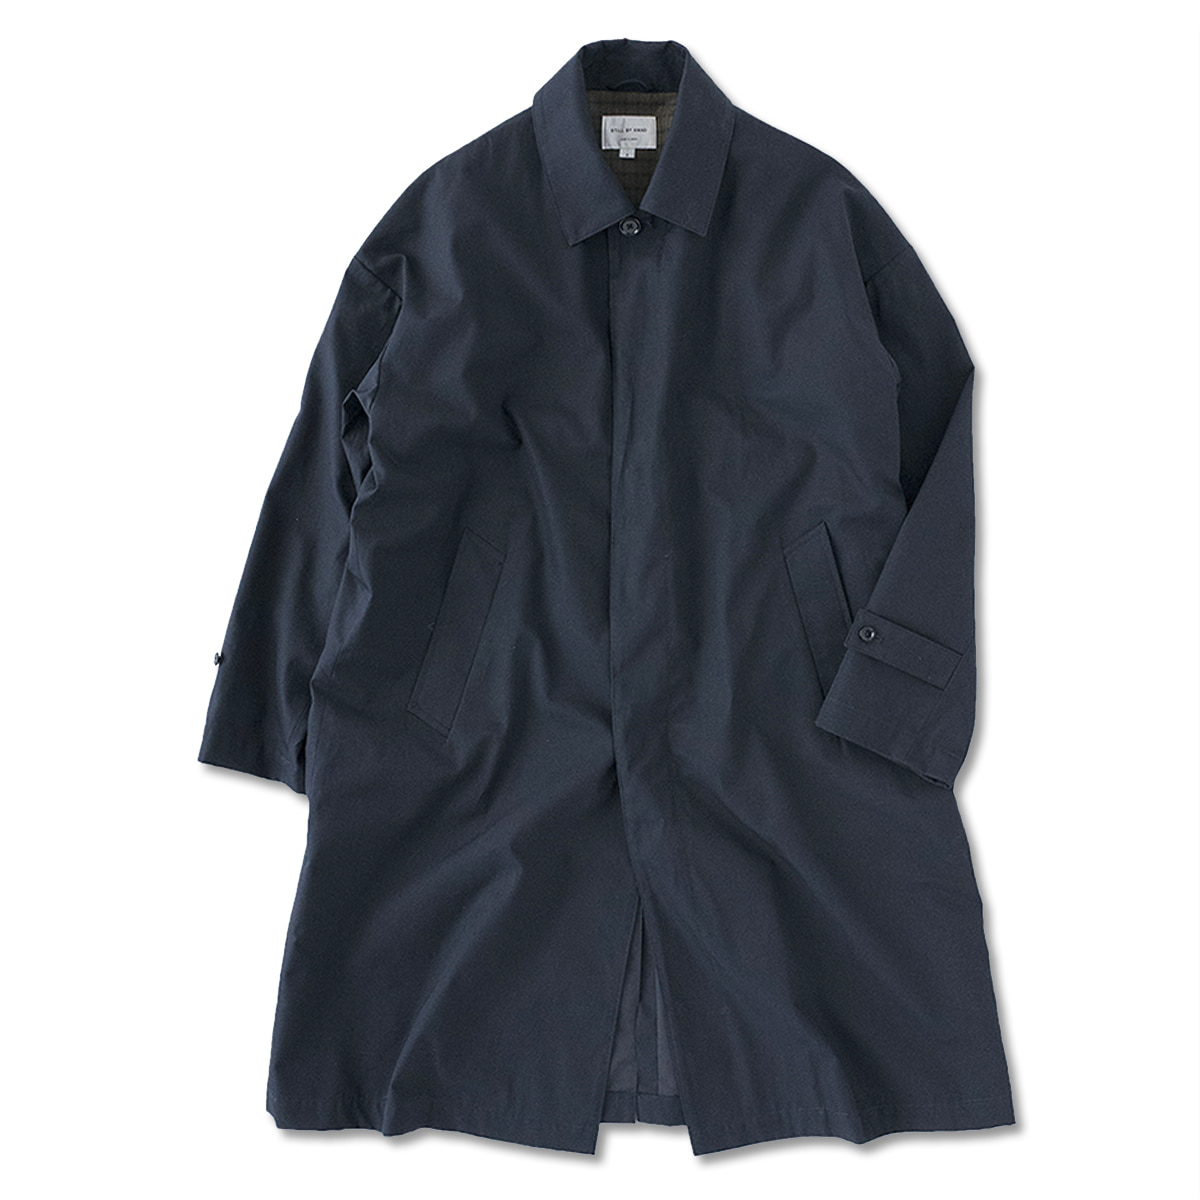 [STILL BY HAND] CO0293OS - OVERSIZED BAL COLLAR COAT 'NAVY'